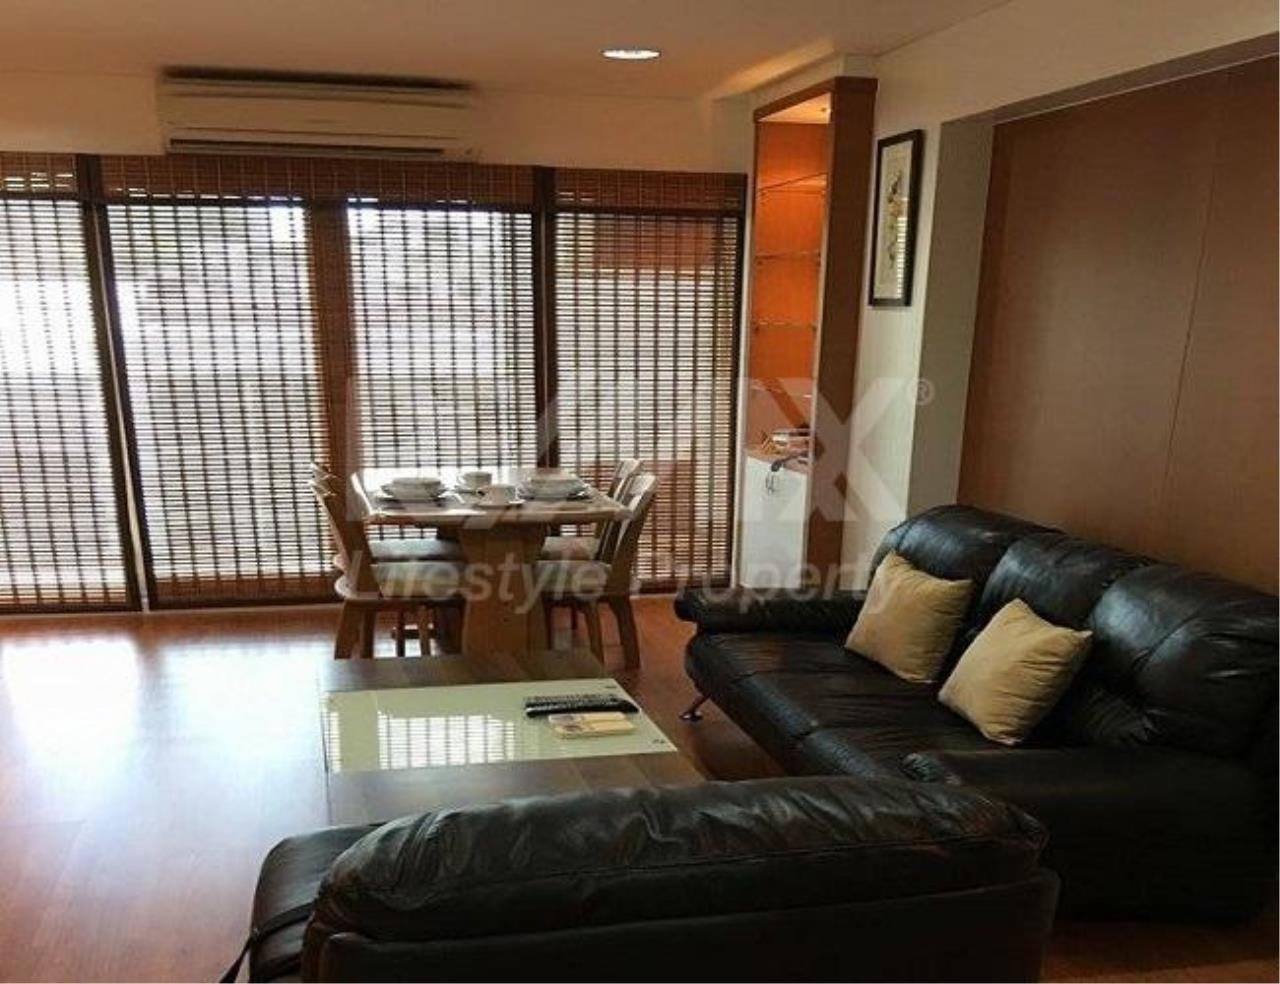 RE/MAX LifeStyle Property Agency's Grand Heritage Thonglor 1